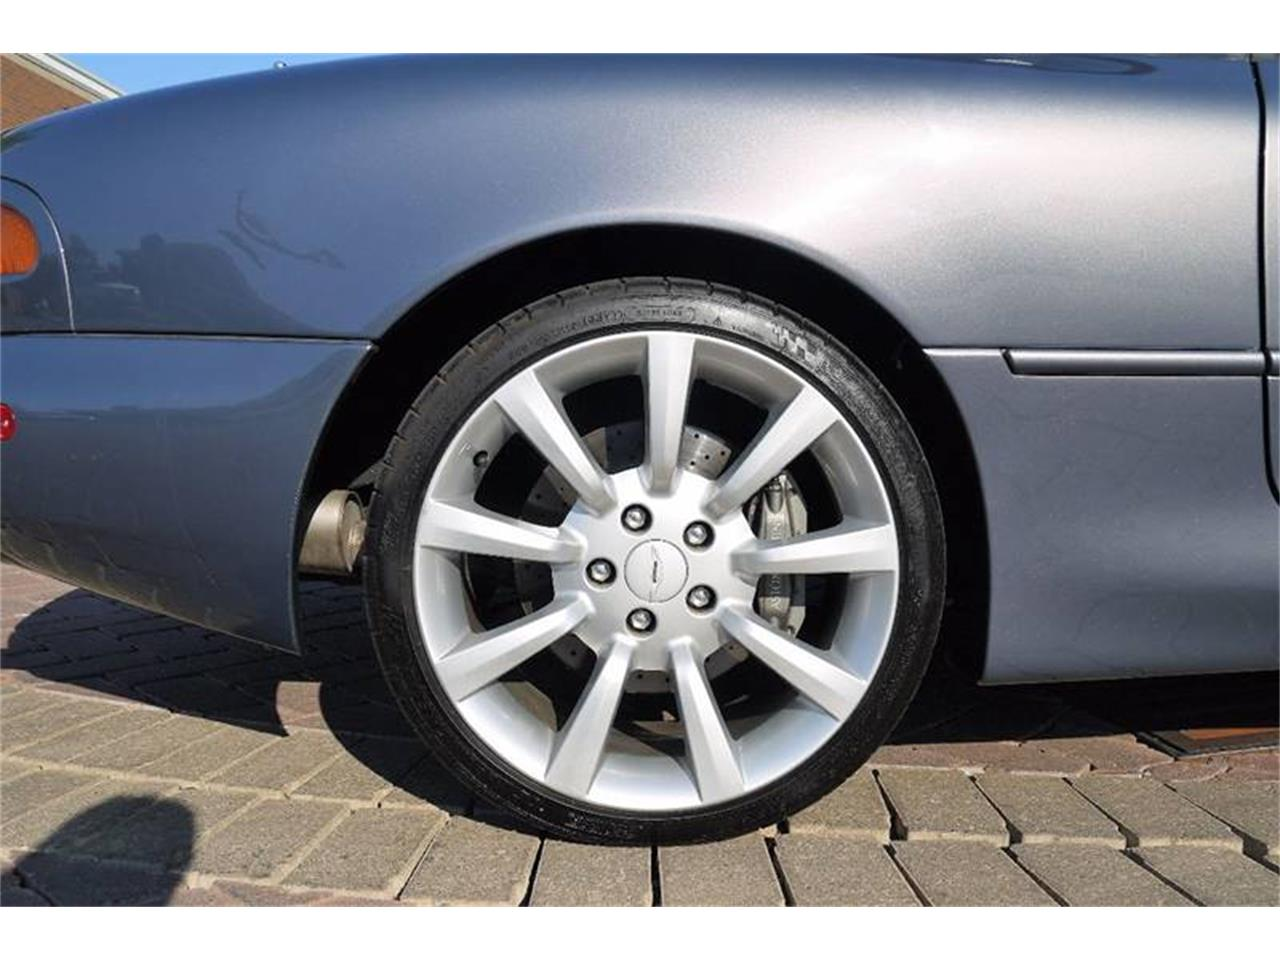 Large Picture of '03 Aston Martin DB7 located in Brentwood Tennessee Auction Vehicle Offered by Arde Motorcars - L79D